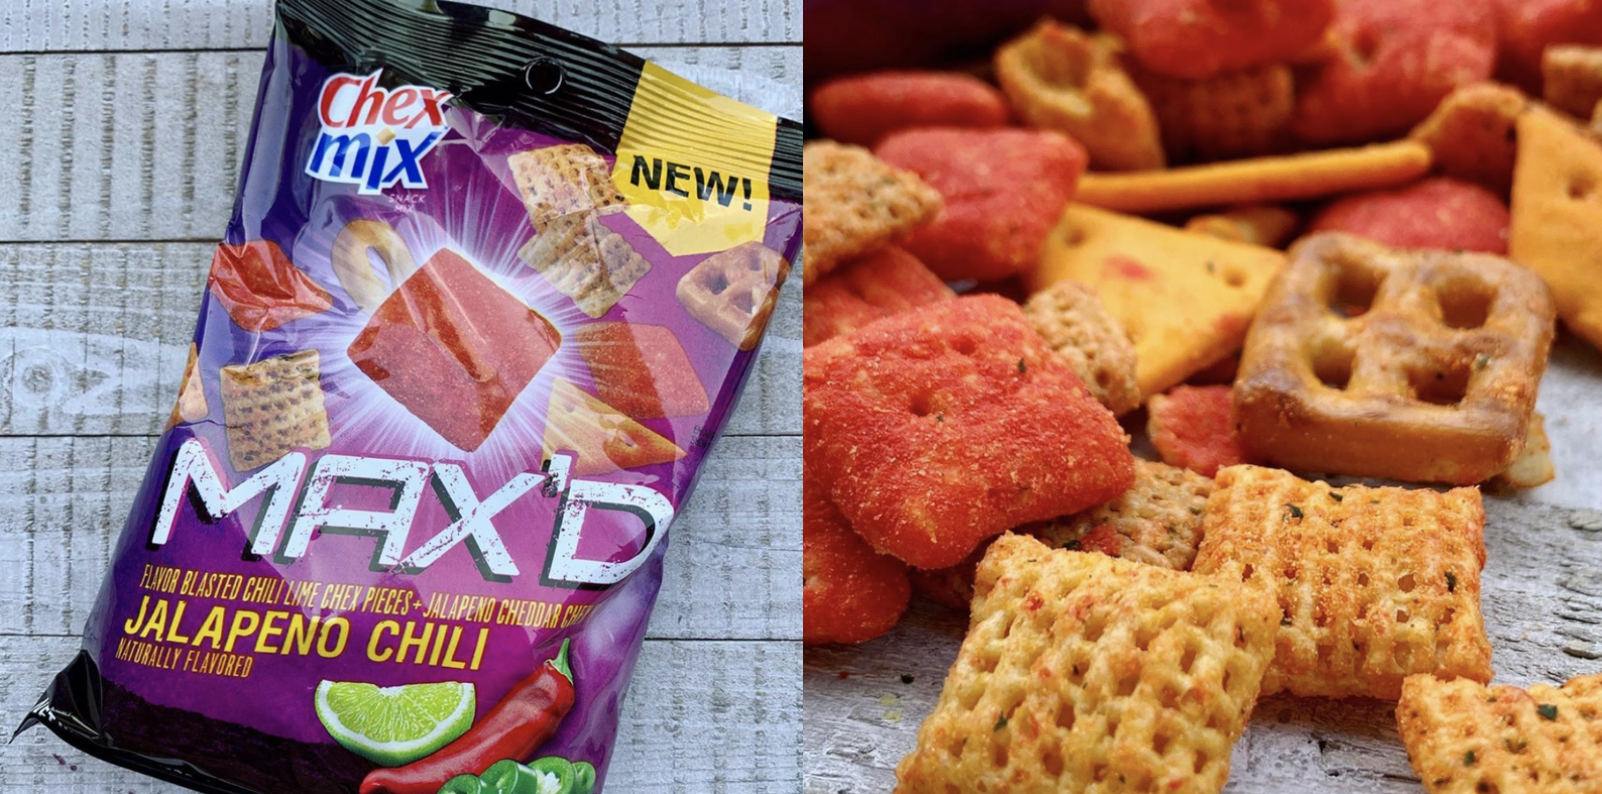 Chex Mix Has A New Spicy Chile Flavor